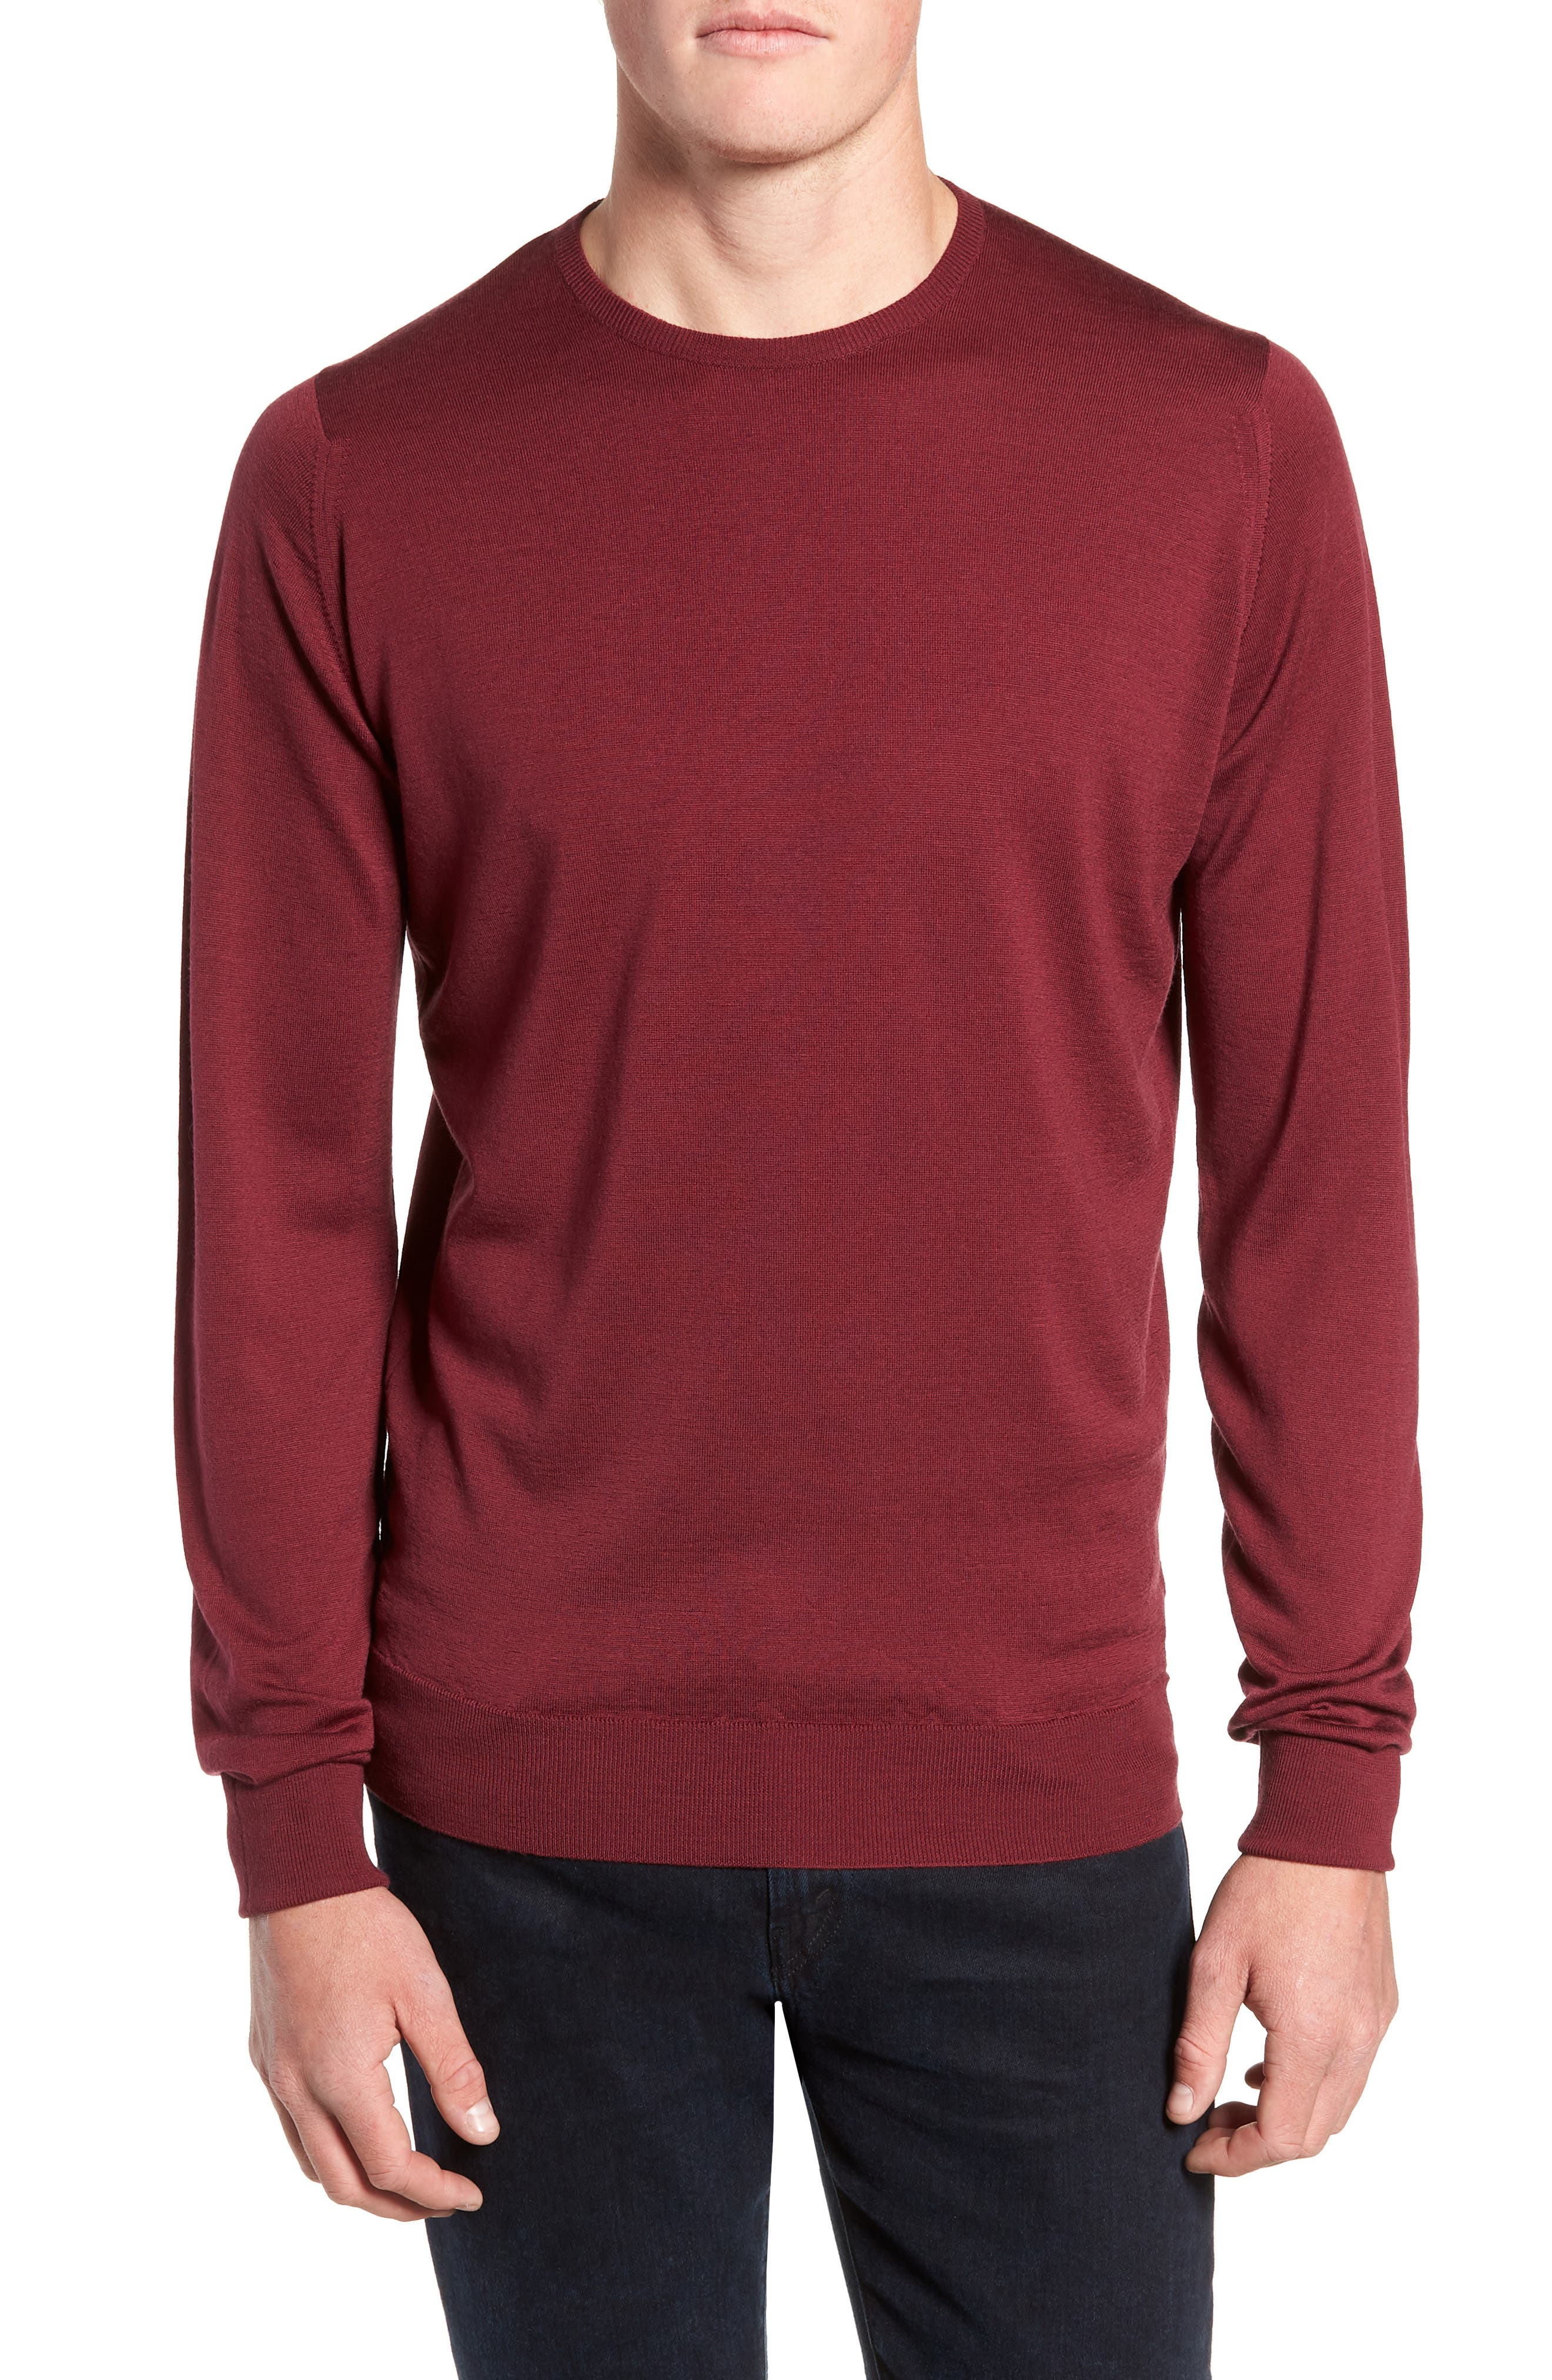 'Marcus' Easy Fit Crewneck Wool Sweater,                             Main thumbnail 1, color,                             BOREDAUX